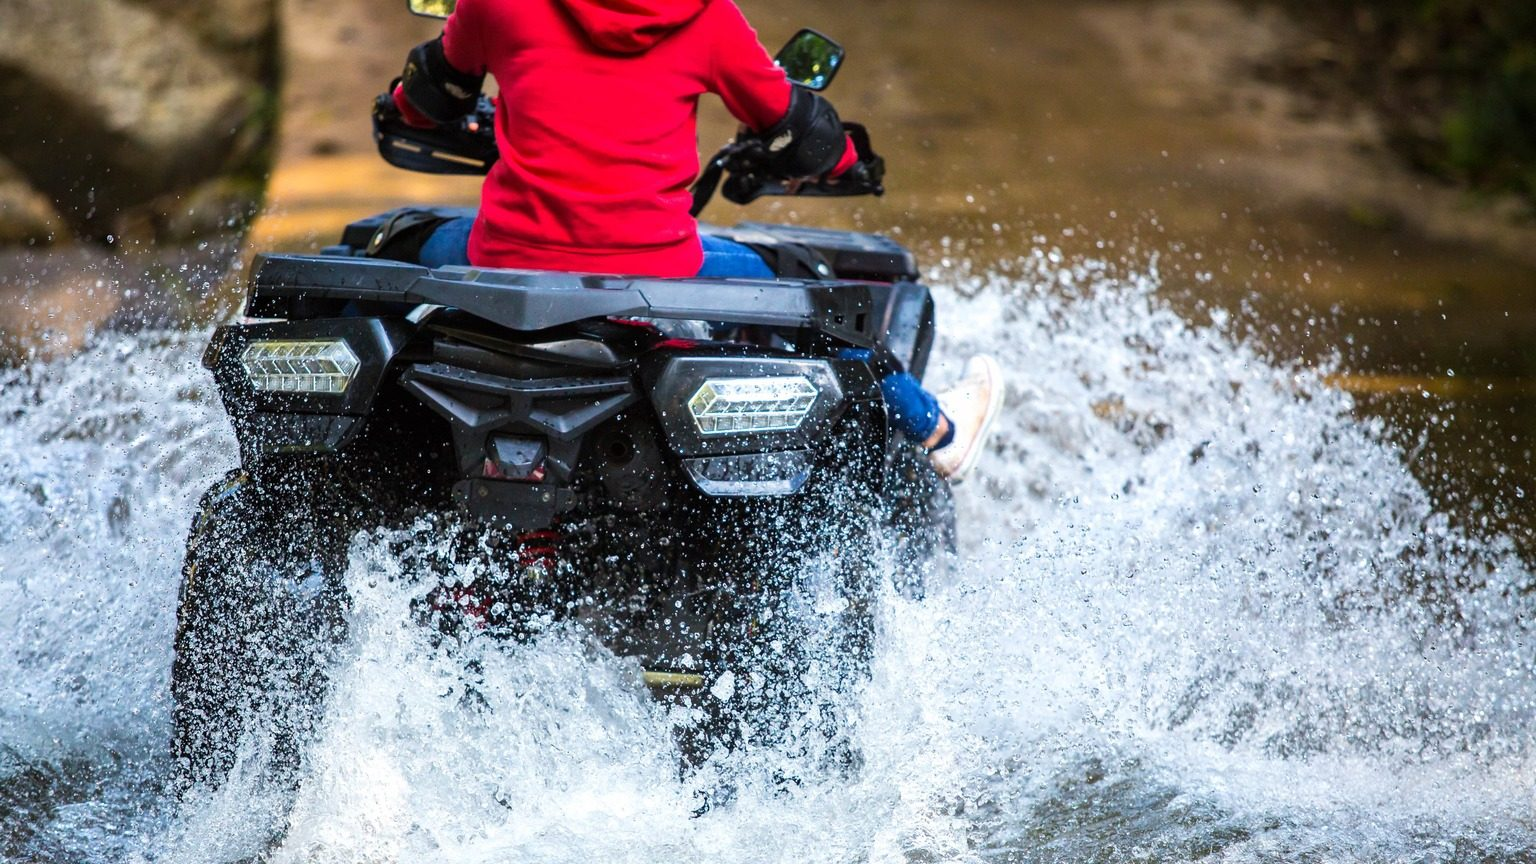 Driving an ATV through a shallow river